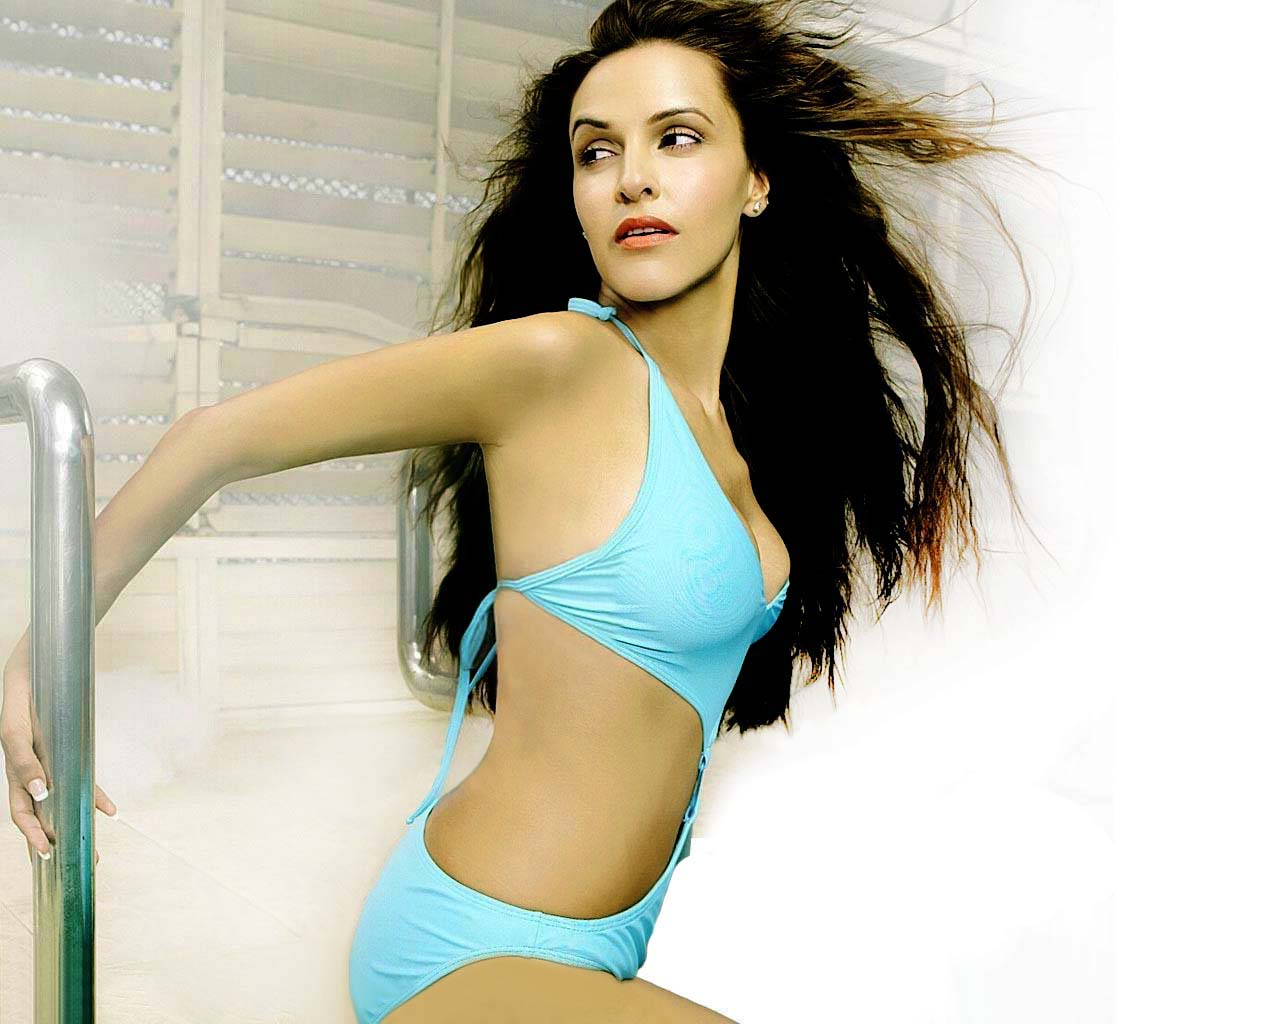 Hot neha dhupia bikini join. All